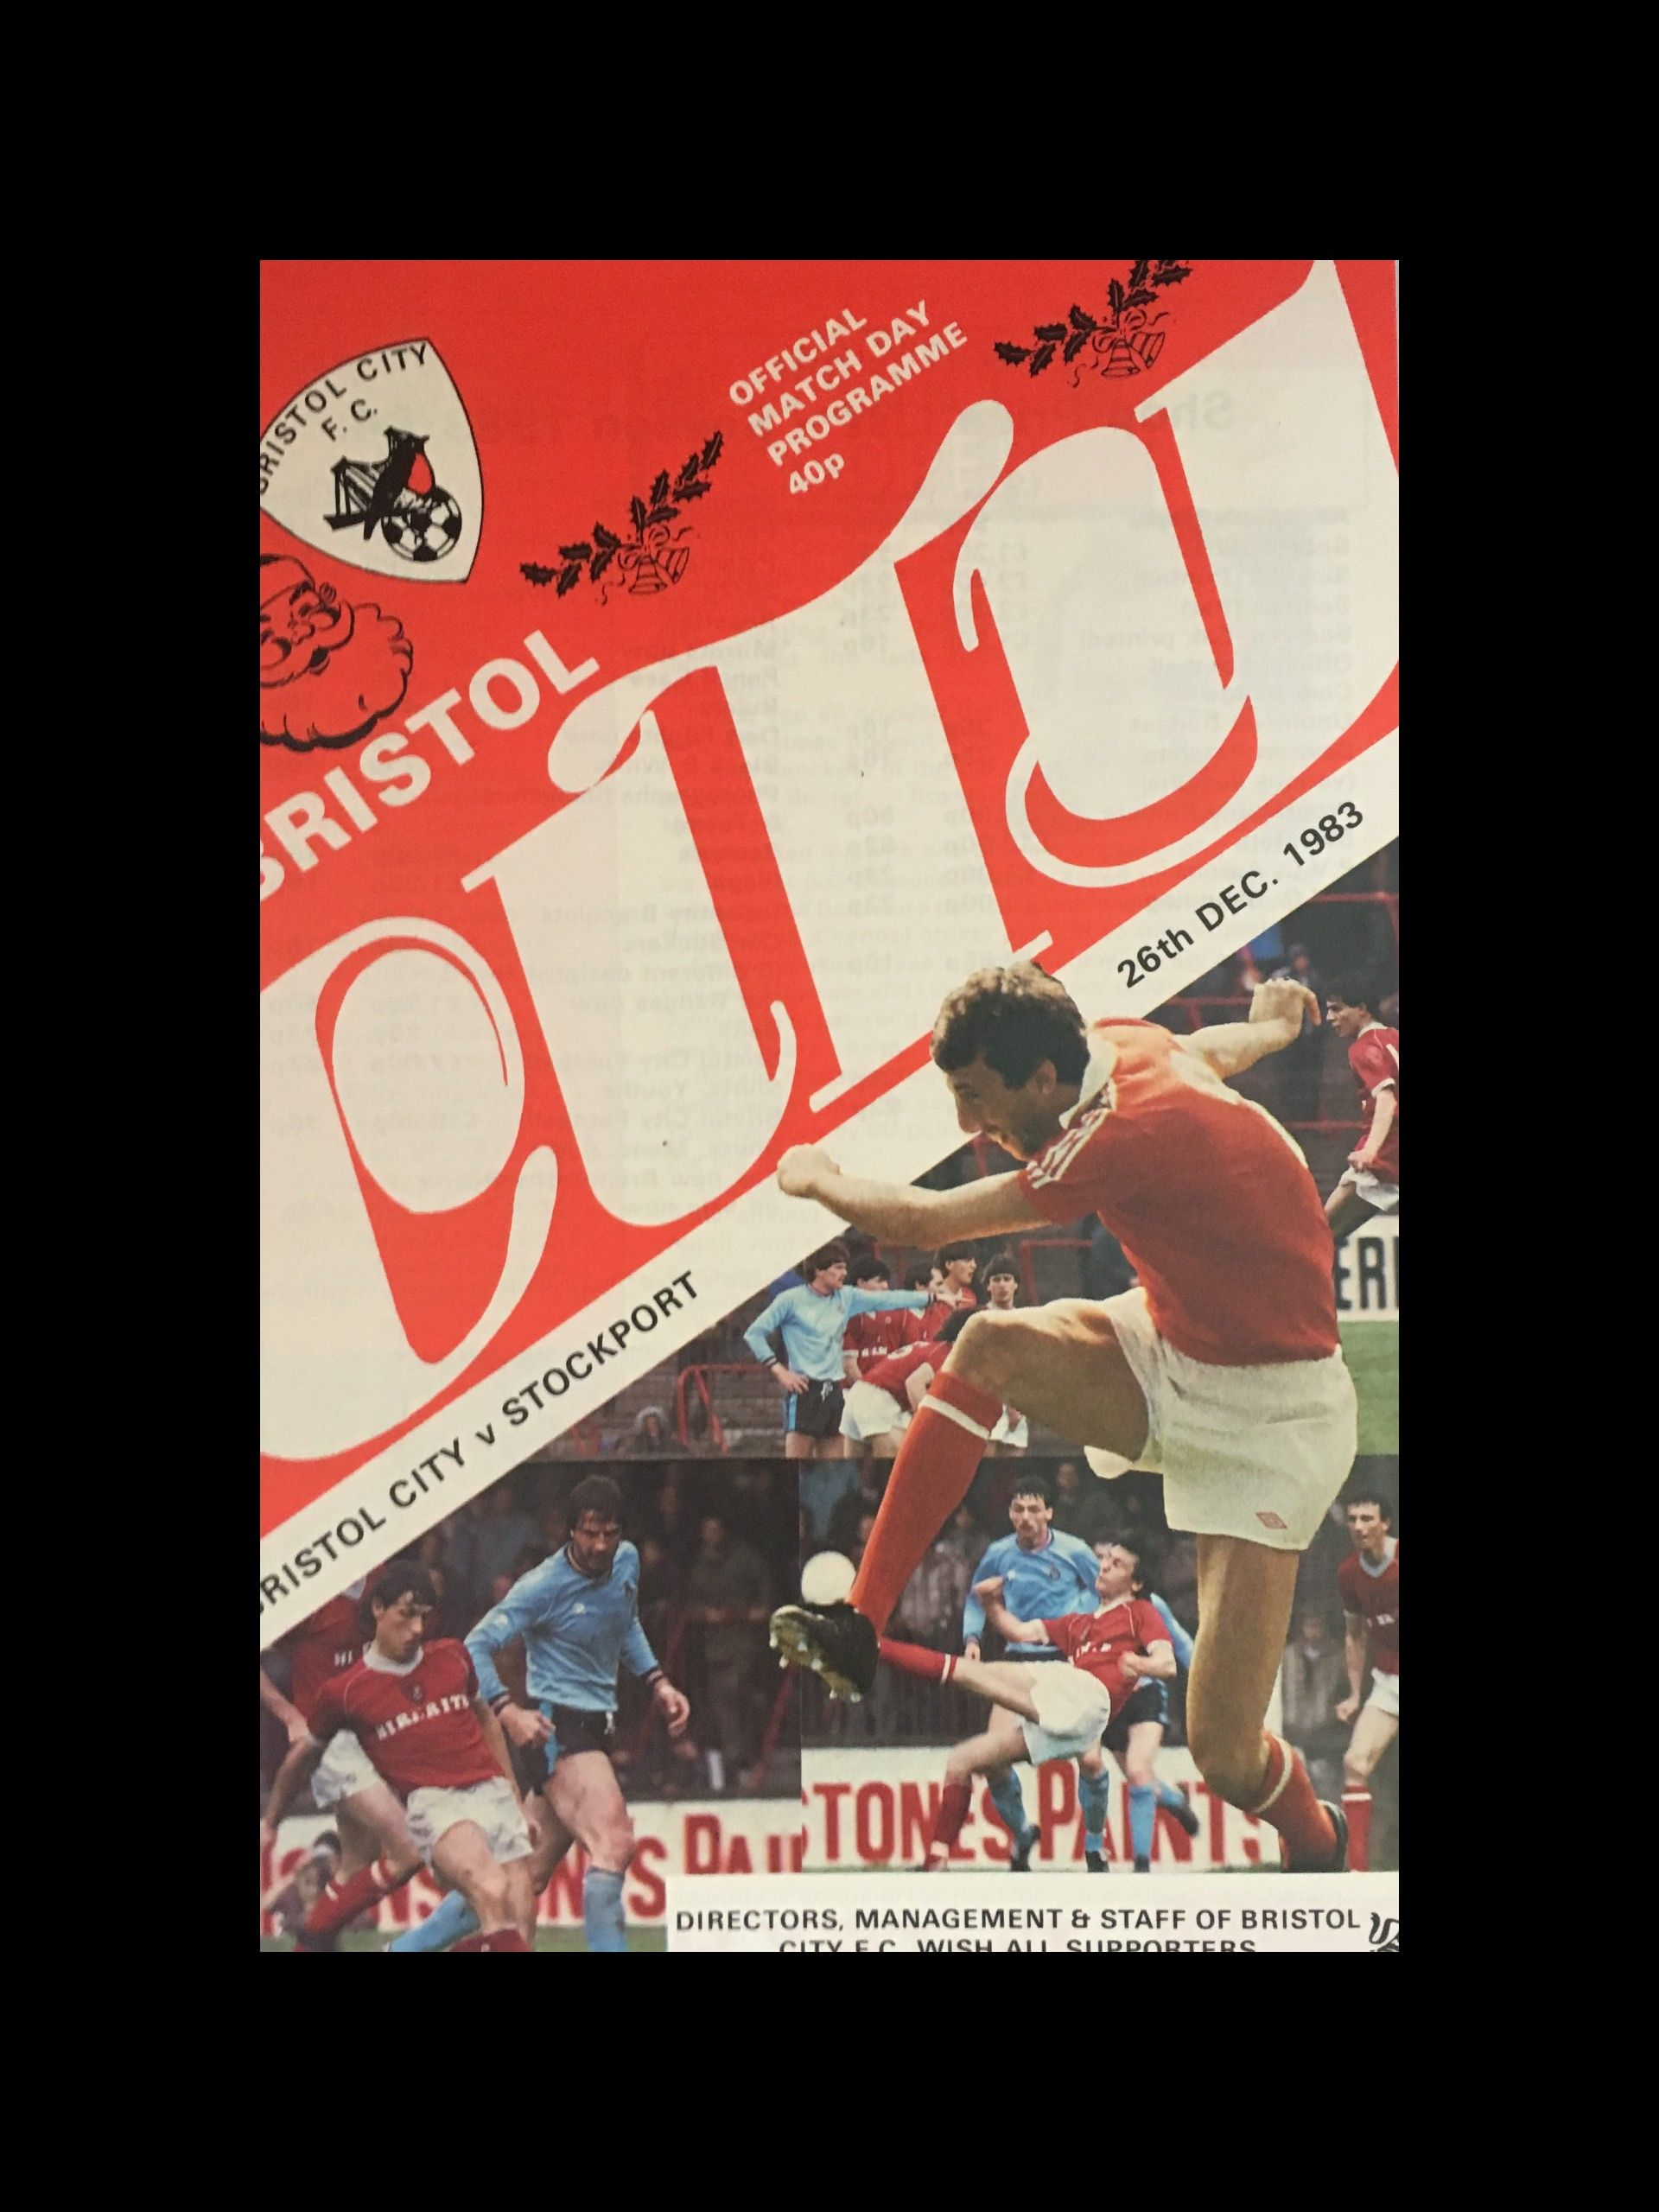 Bristol City v Stockport County 26-12-83 Programme